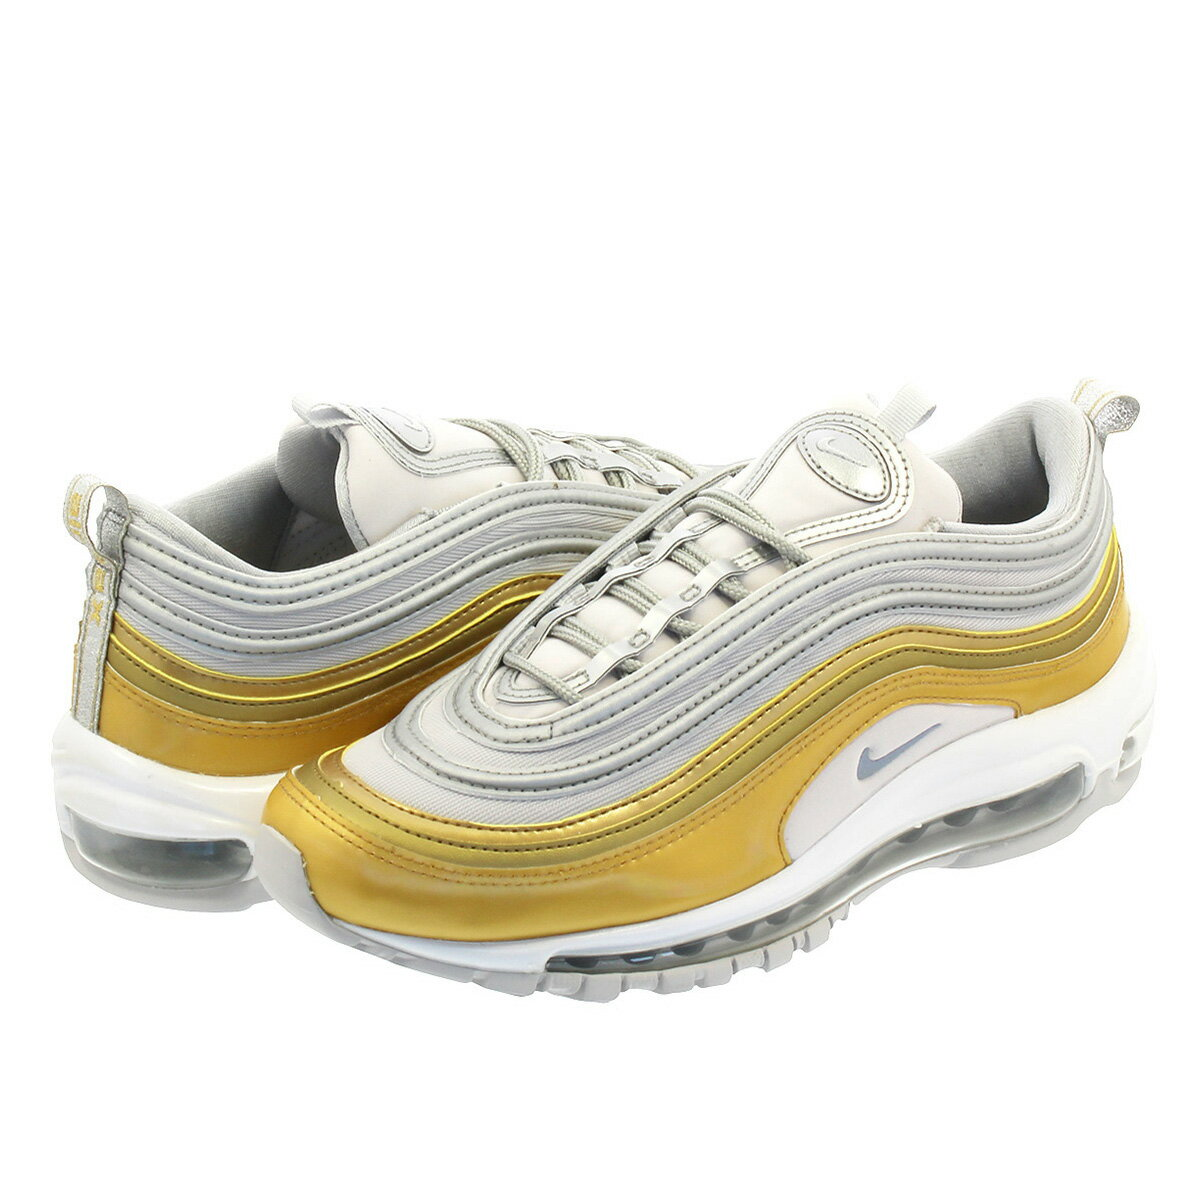 aggiungere a includere Transizione  Athletic Shoes Clothing, Shoes & Accessories NIKE WMNS AIR MAX 97 SE AQ4137- 001 VAST GREY METALLIC SILVER METALLIC GOLD myself.co.ls